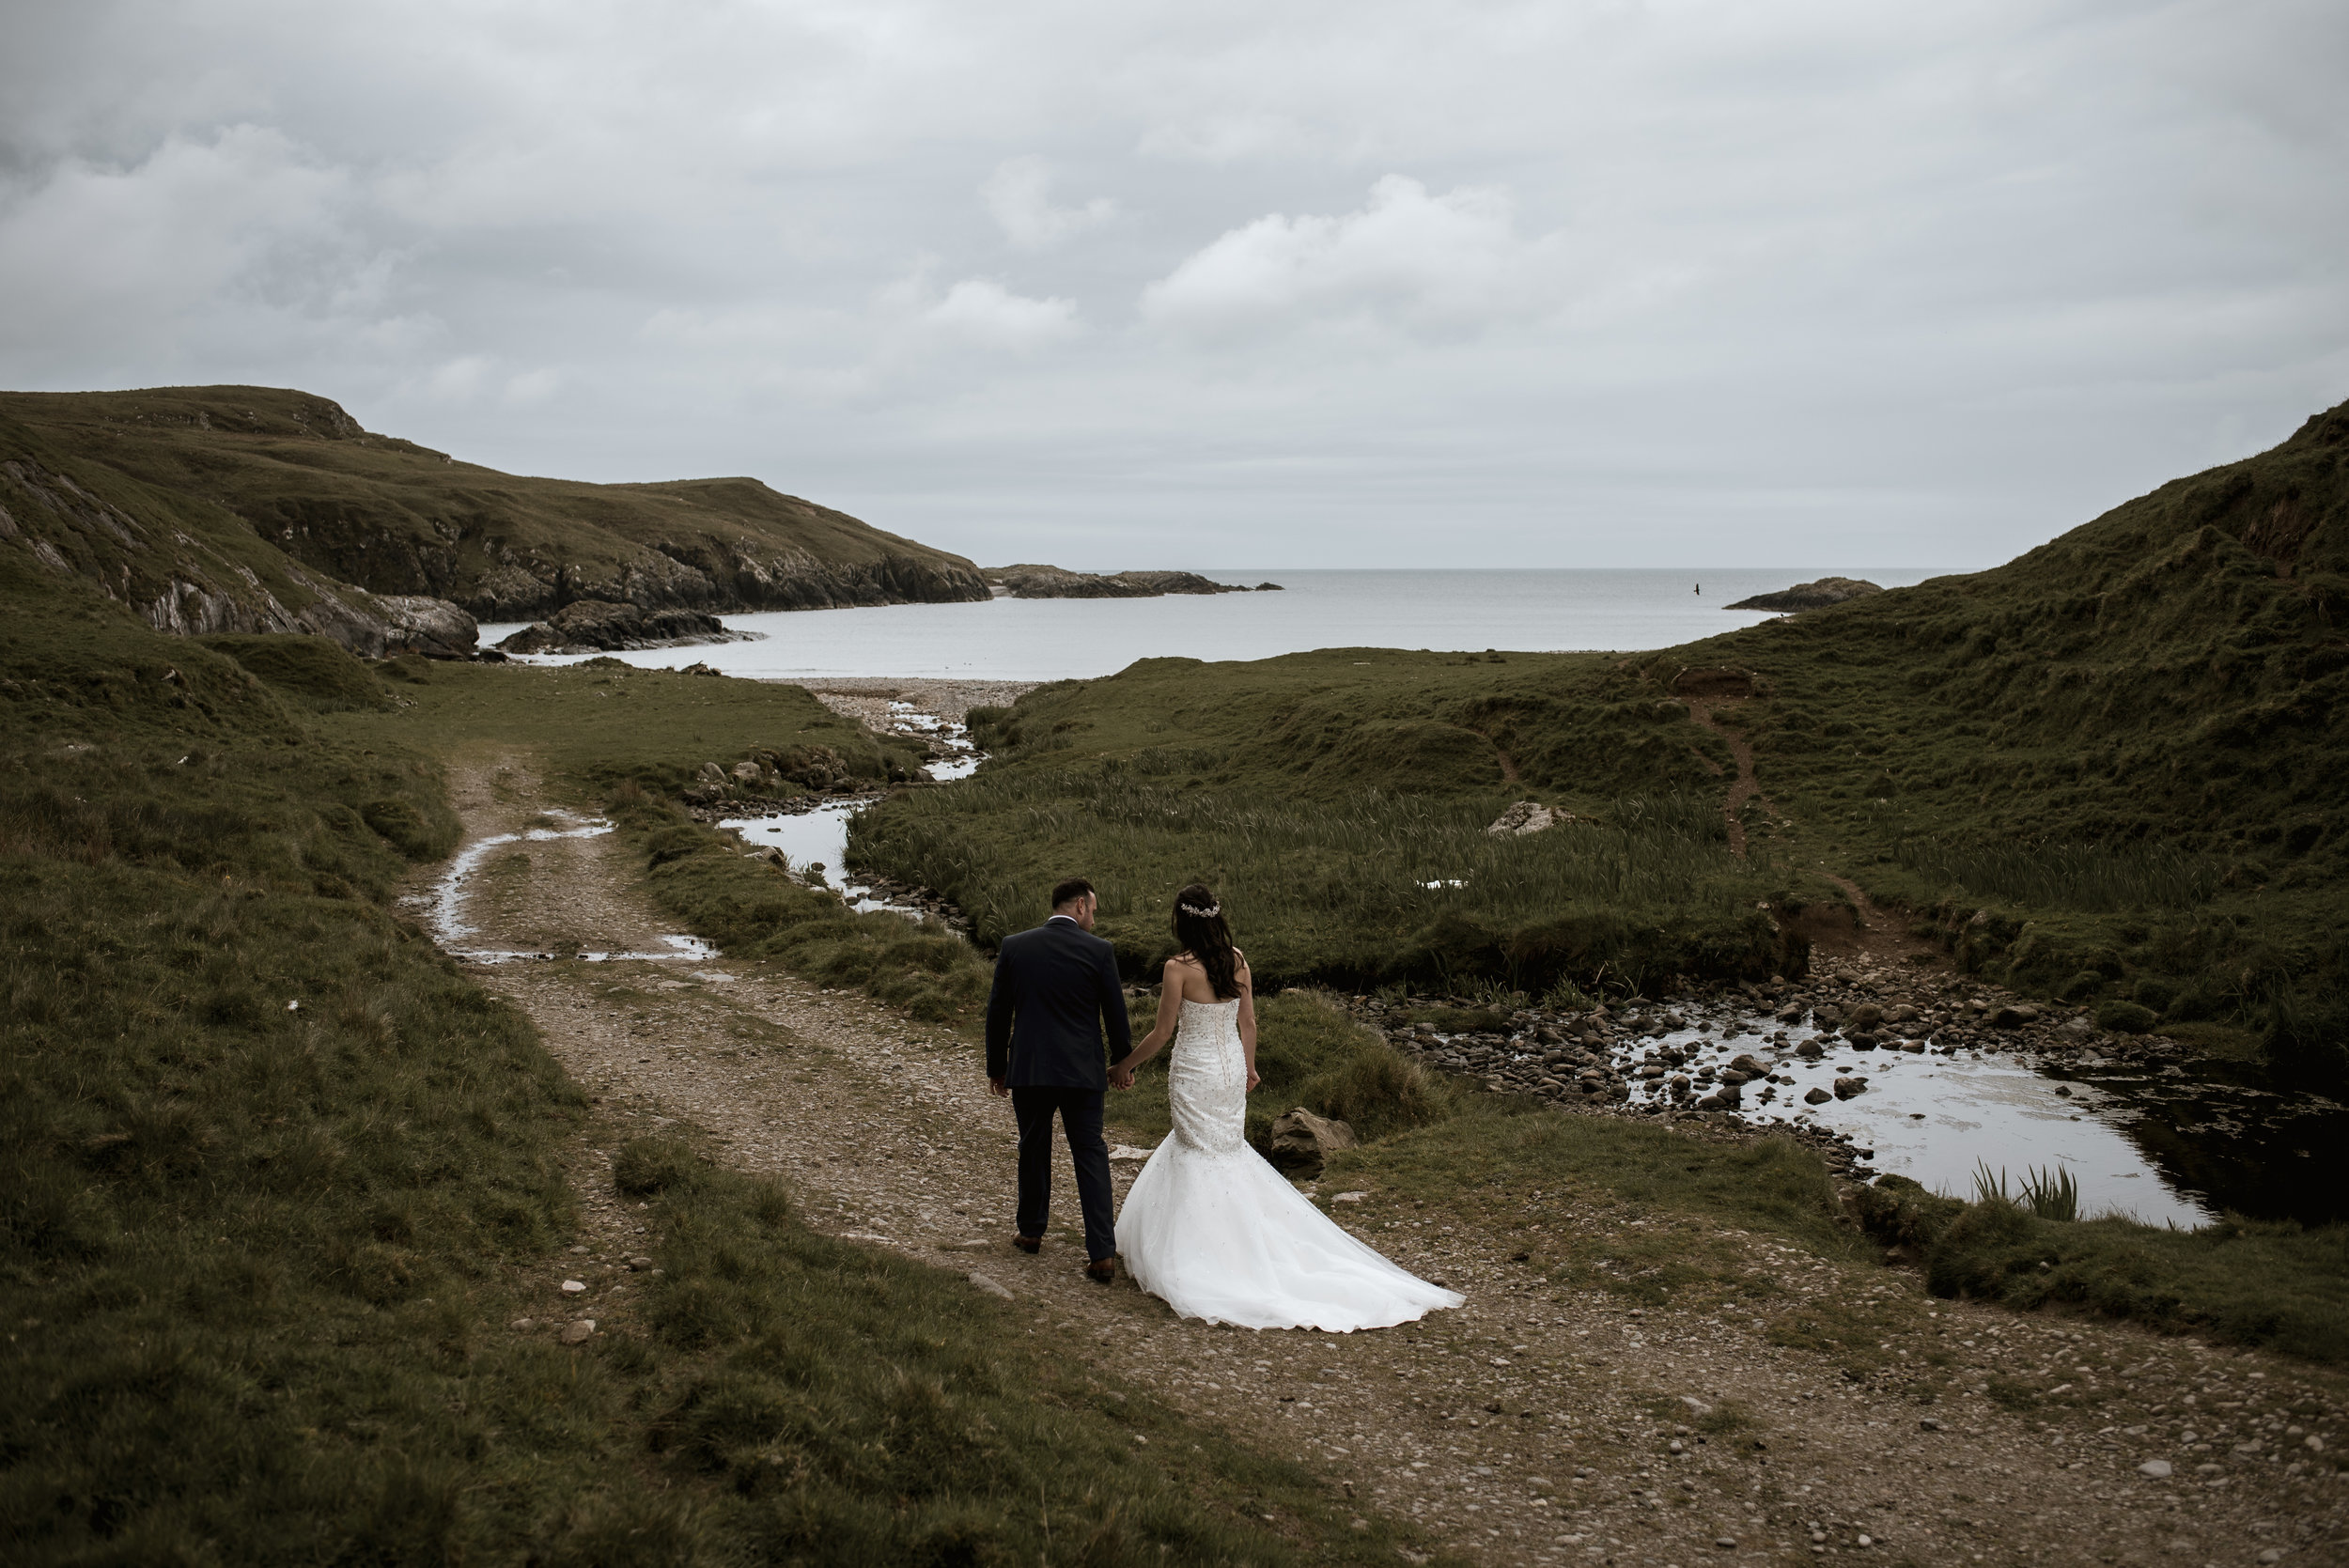 Evie and John - brides and bays, plus whisky and a wedding